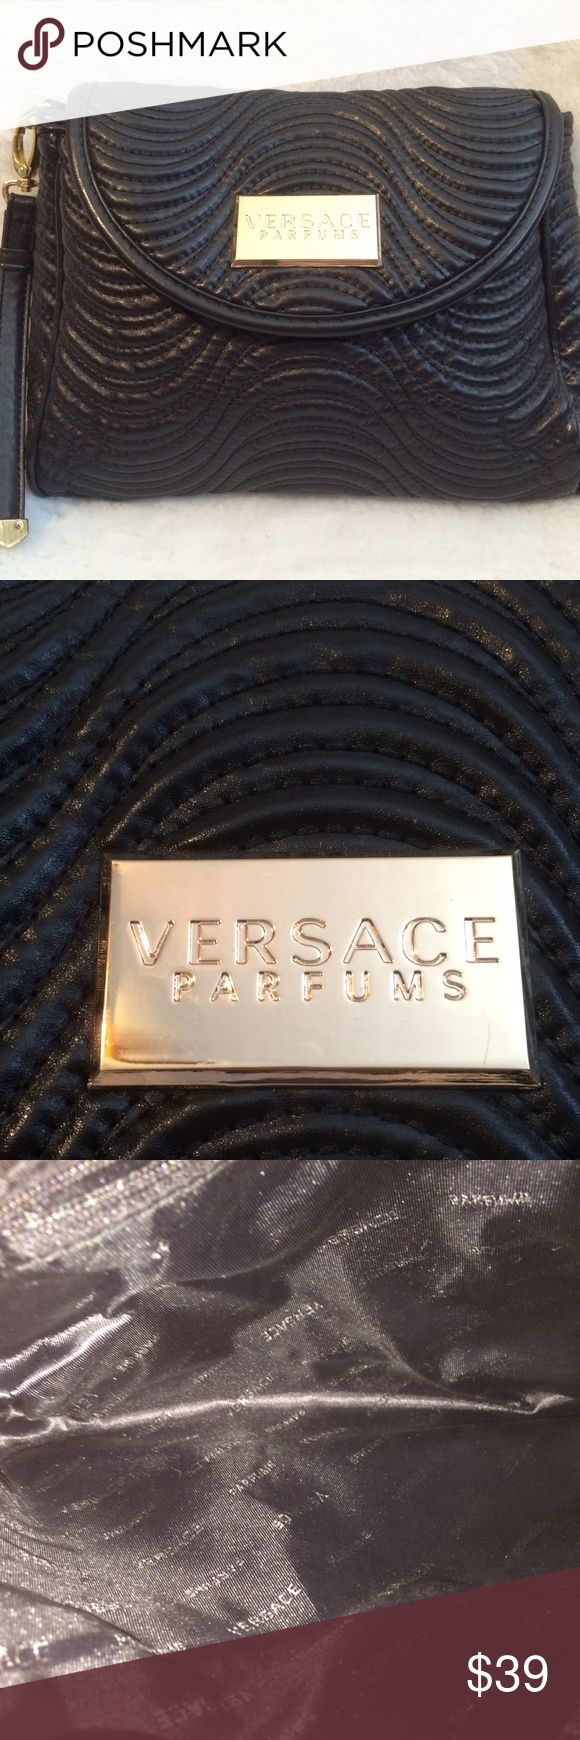 Versace Parfums Black Bag Versace Parfums Black Bag with Optional Strap. Gold Hardware. In like new condition. It maybe used as a handbag/clutch or a very nice makeup bag. Versace Bags Cosmetic Bags & Cases